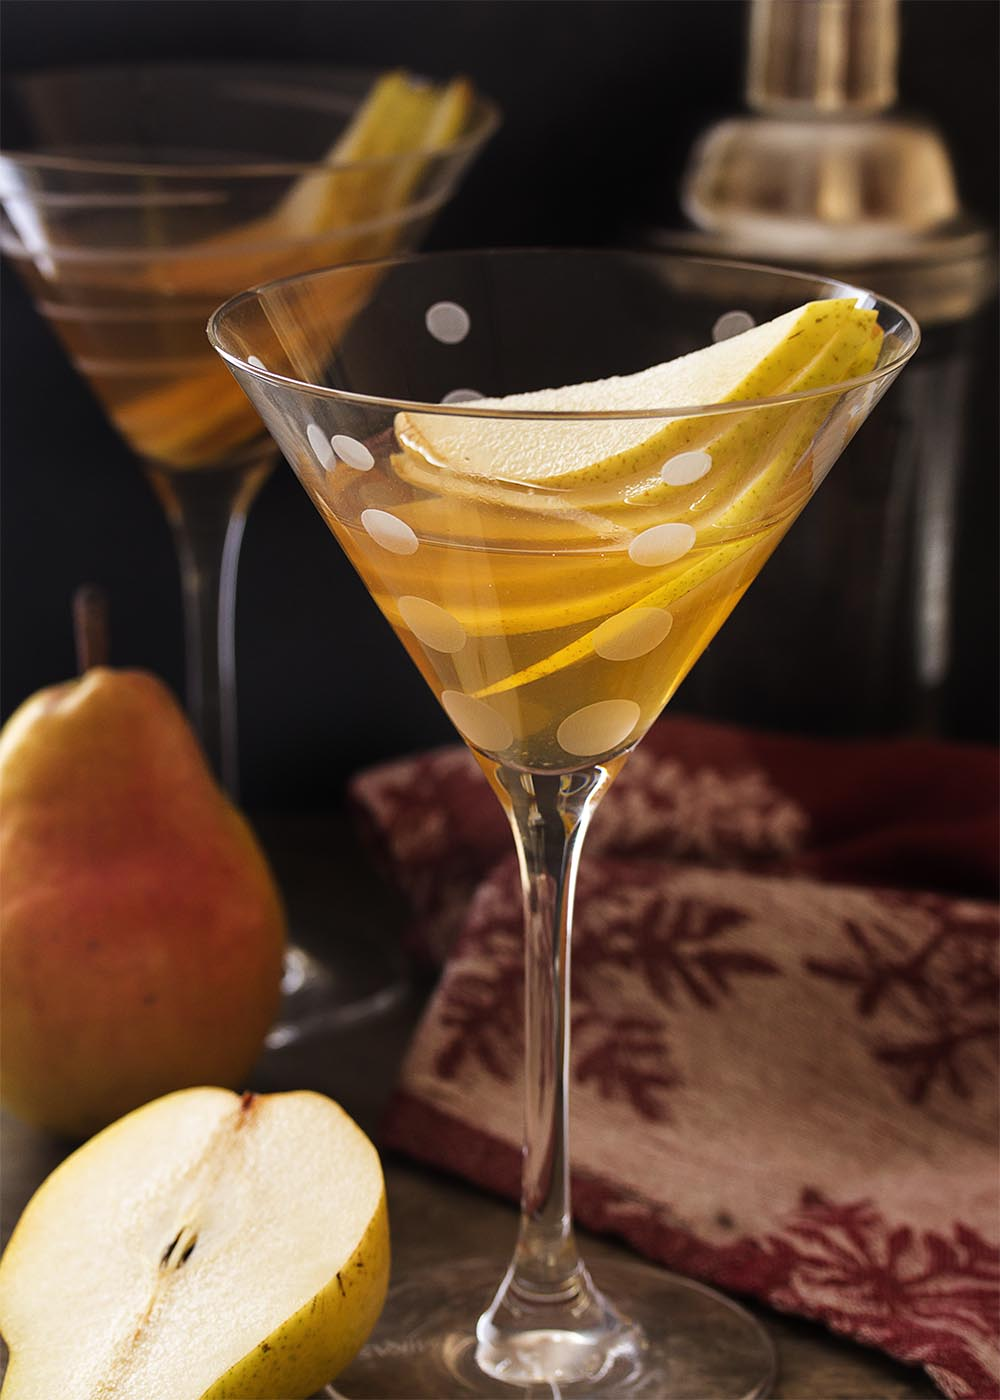 Have some ripe pears sitting on your counter? Make some spiced pear syrup and shake it with pear brandy and vodka for a double pear martini! | justalittlebitofbacon.com